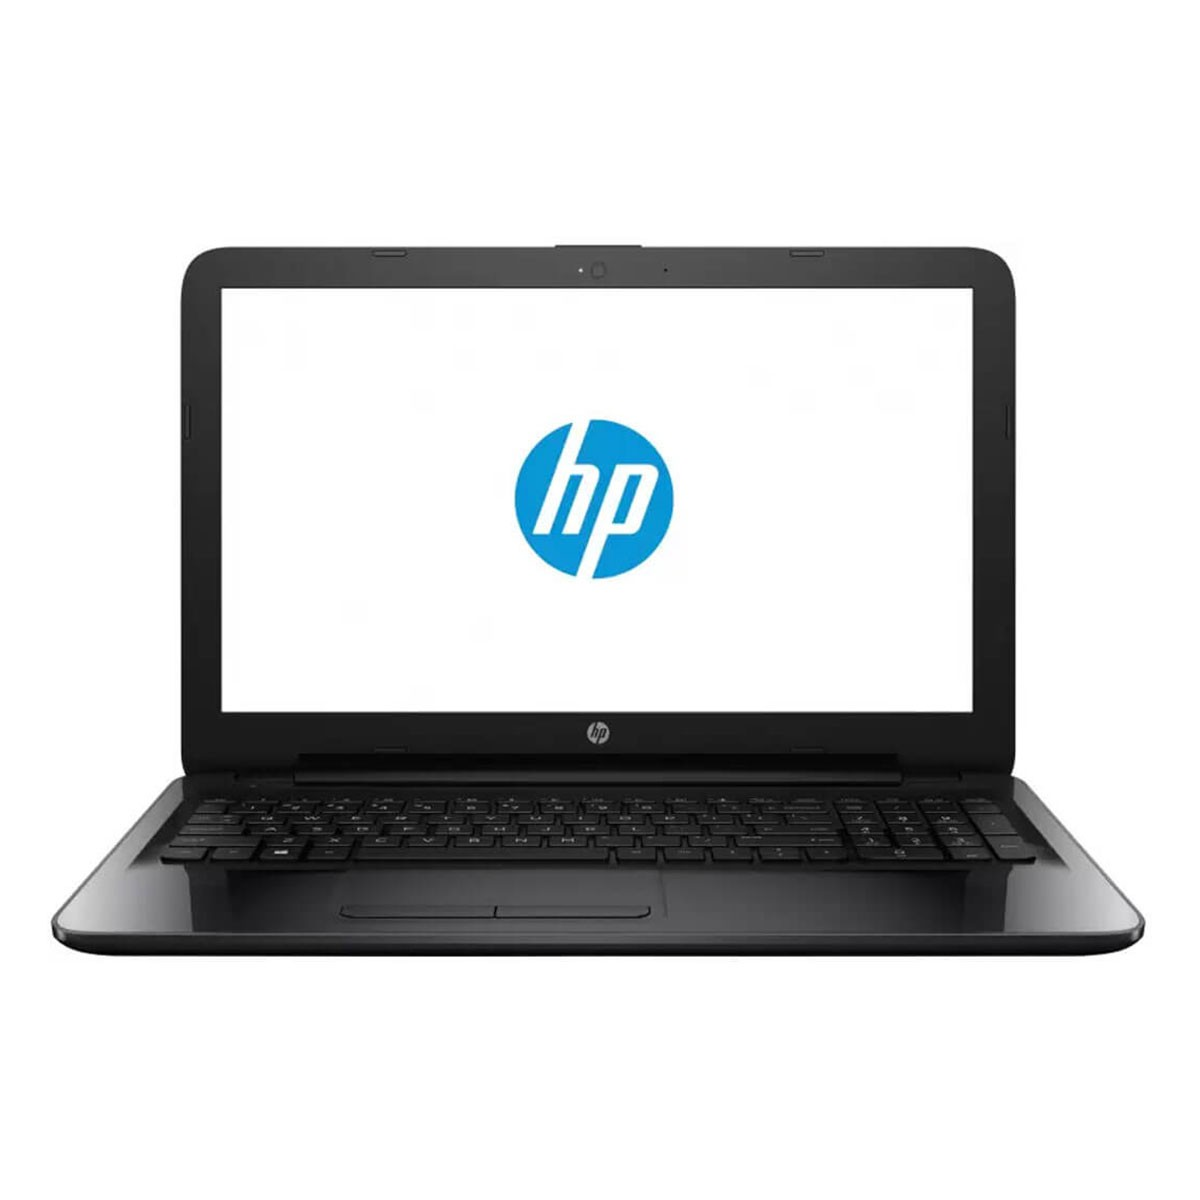 "HP 15-AC150TX Laptop (5th Gen Core i3-5005U/4GB/1TB/2GB Graphics/Dos/15.6"")"